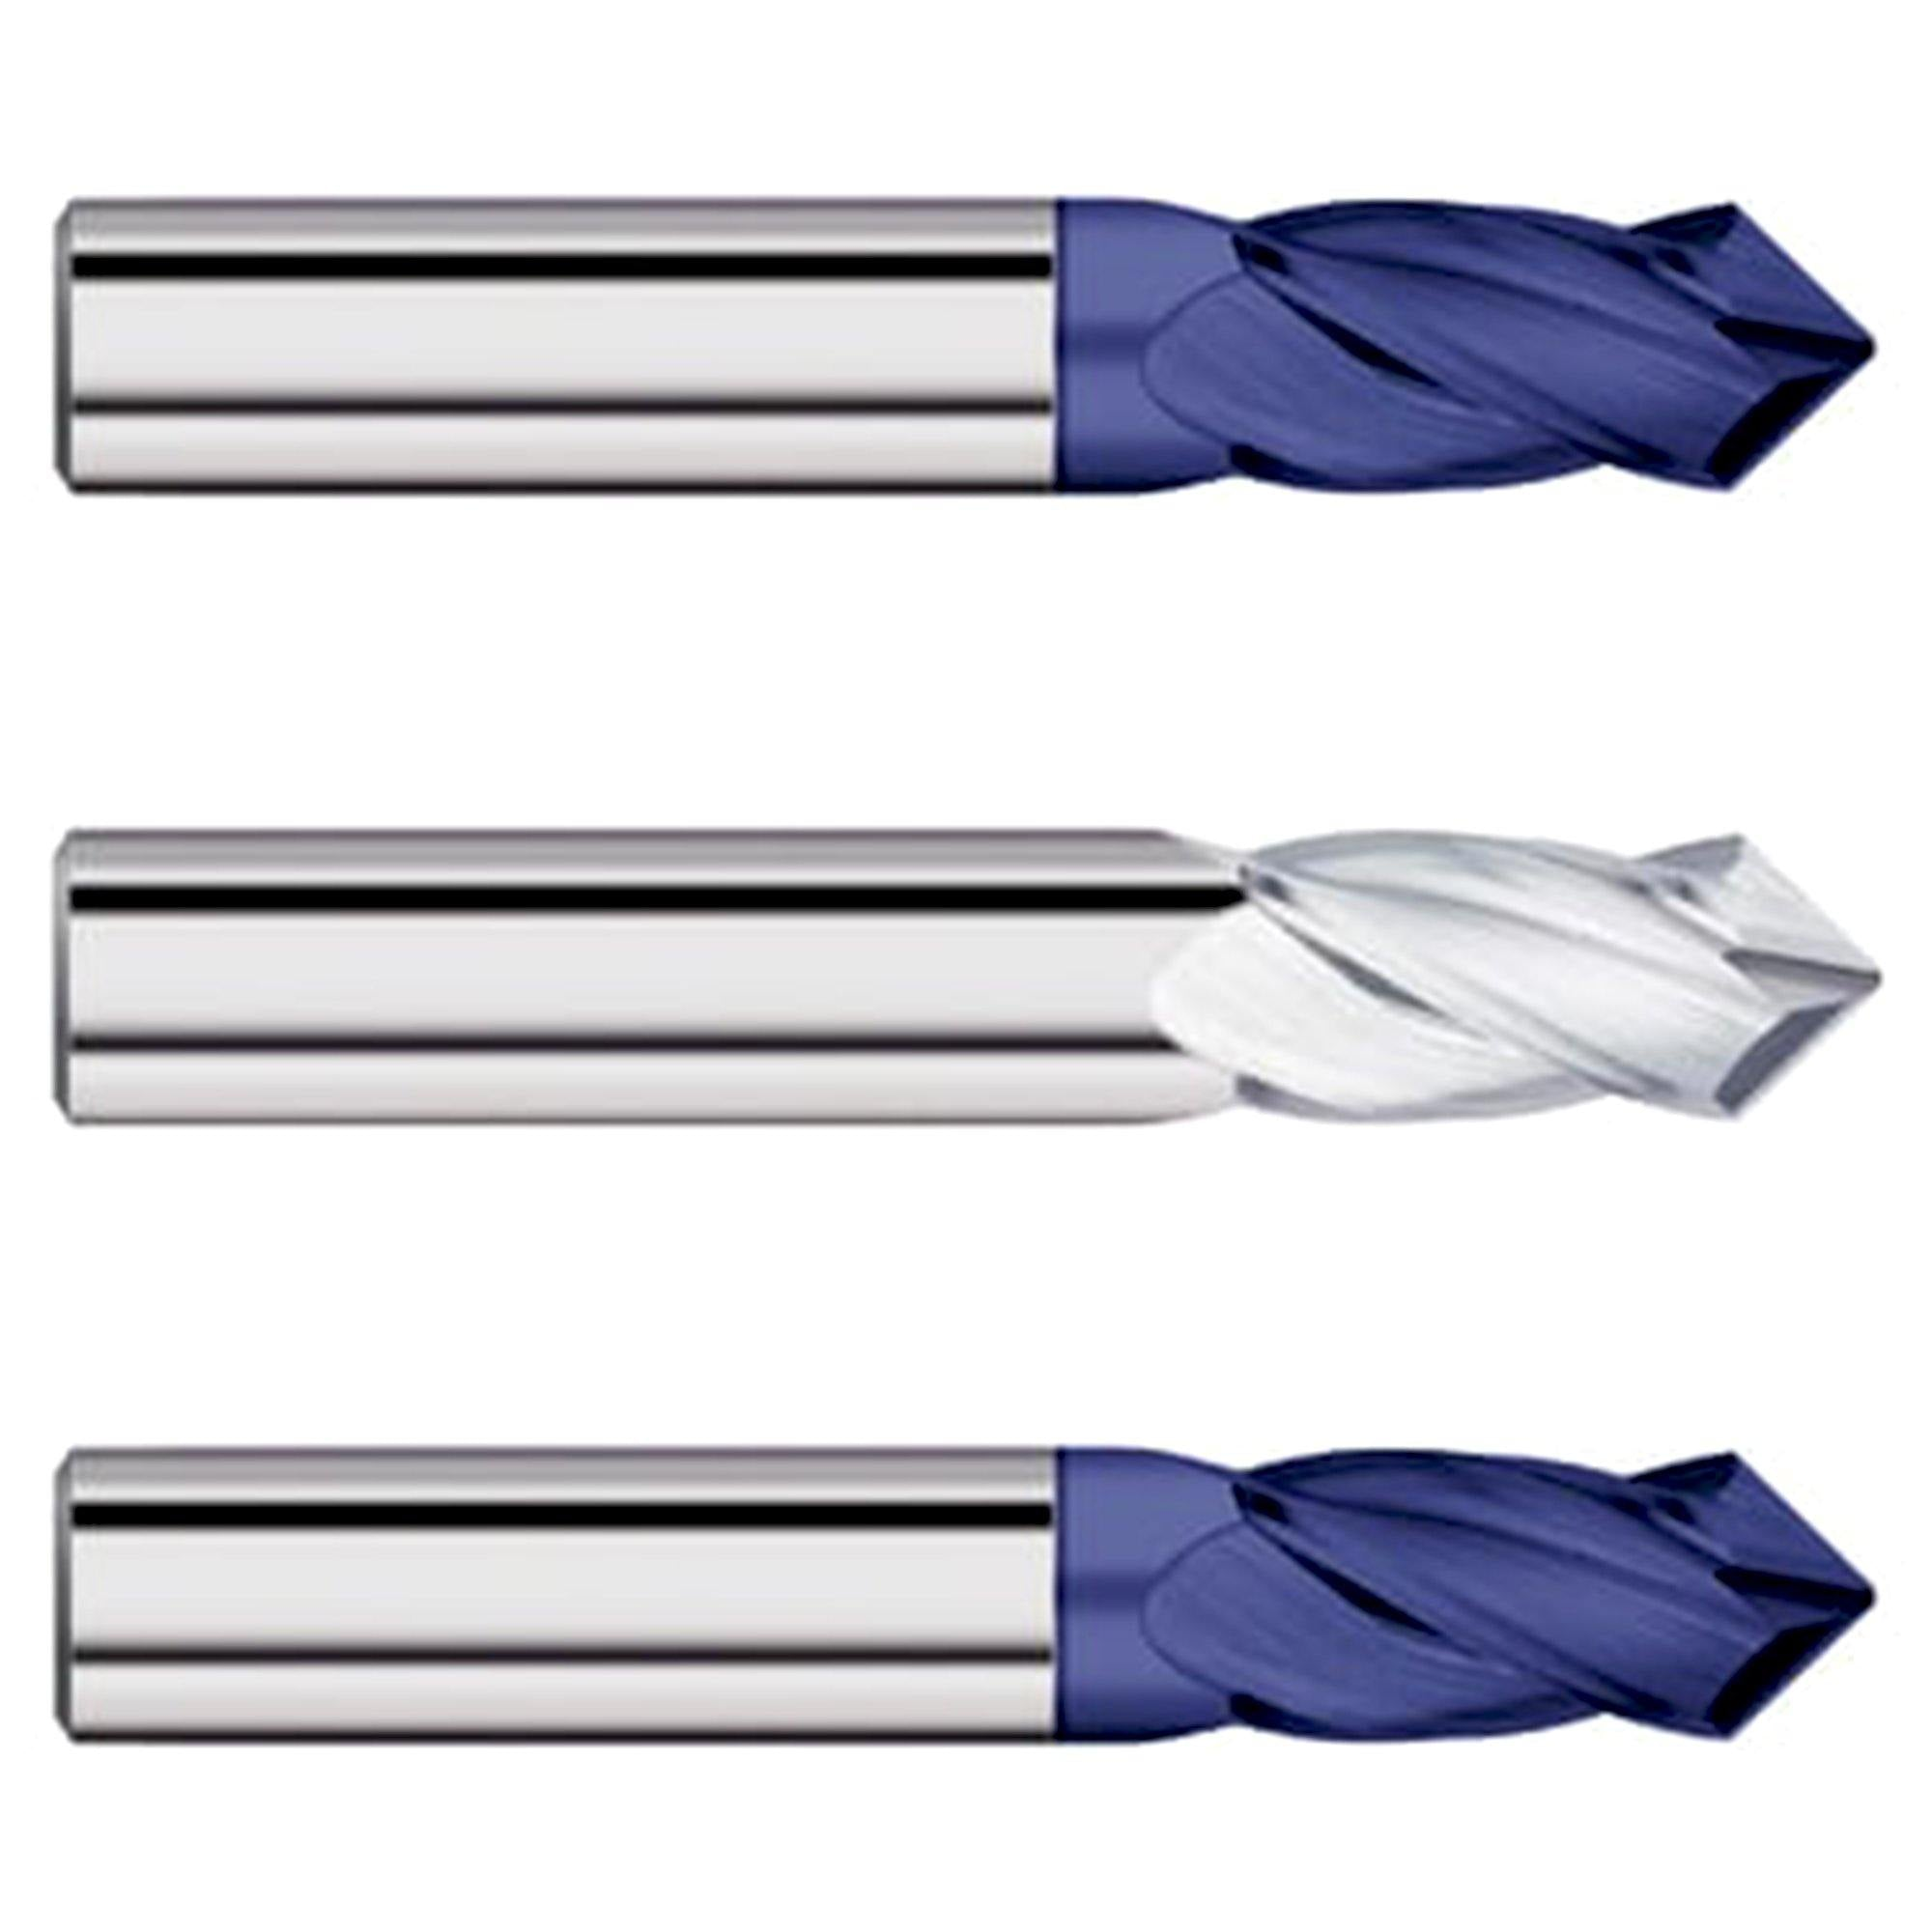 "(3 Pack) 3/4"" Dia. x 1-1/2"" LOC x 4"" Carbide Drill End Mill - End Mill Store"